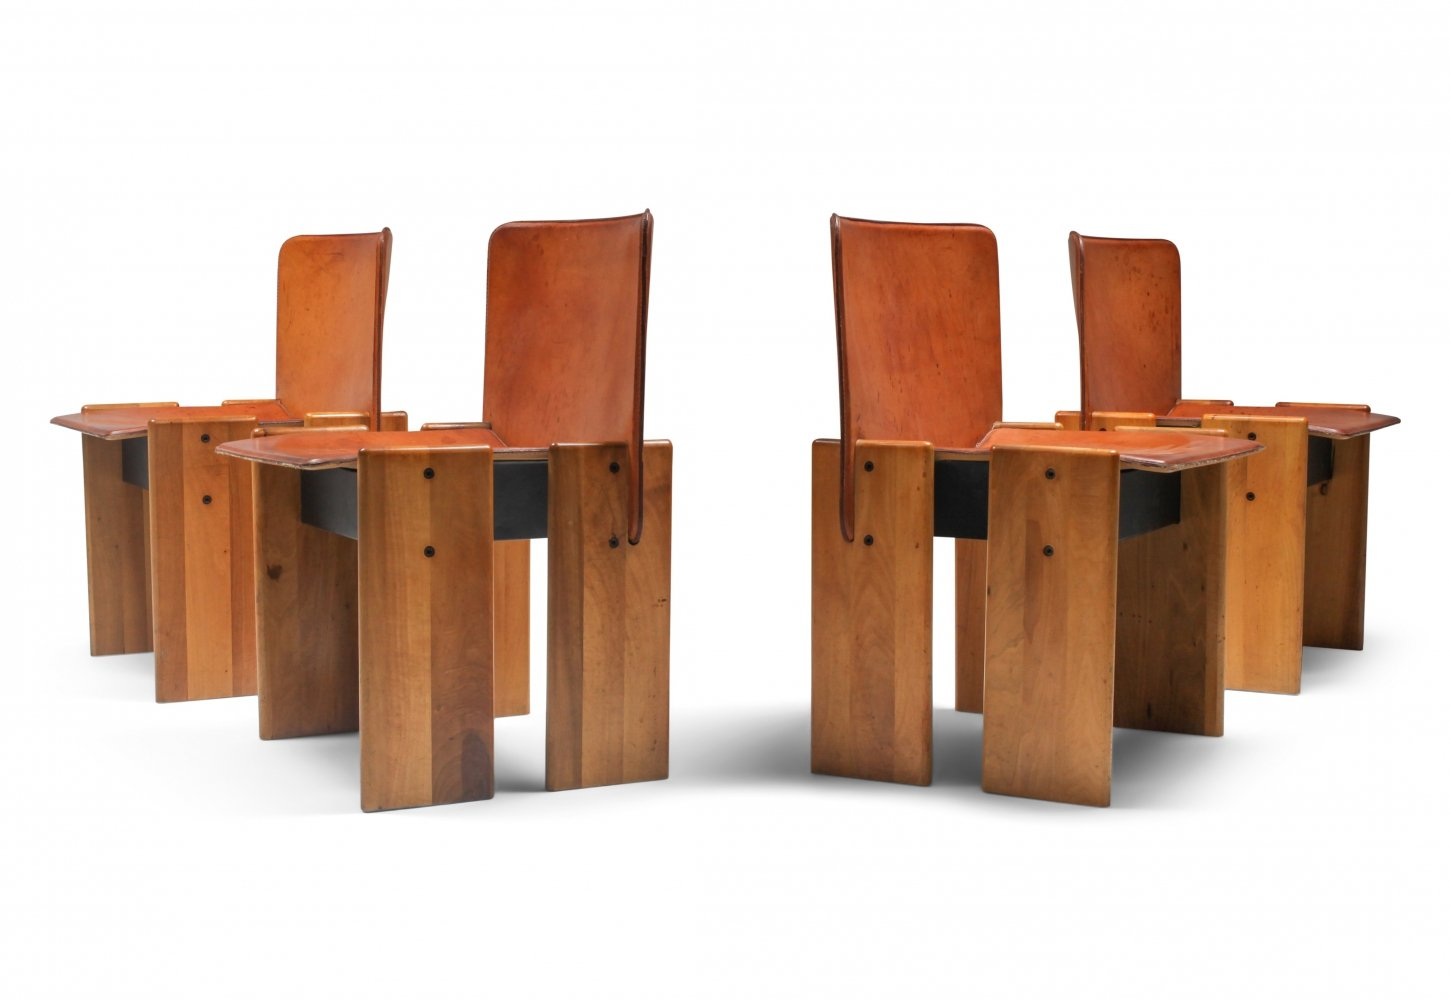 Walnut & cognac leather dining chairs by Afra & Tobia Scarpa, Italy 1970s